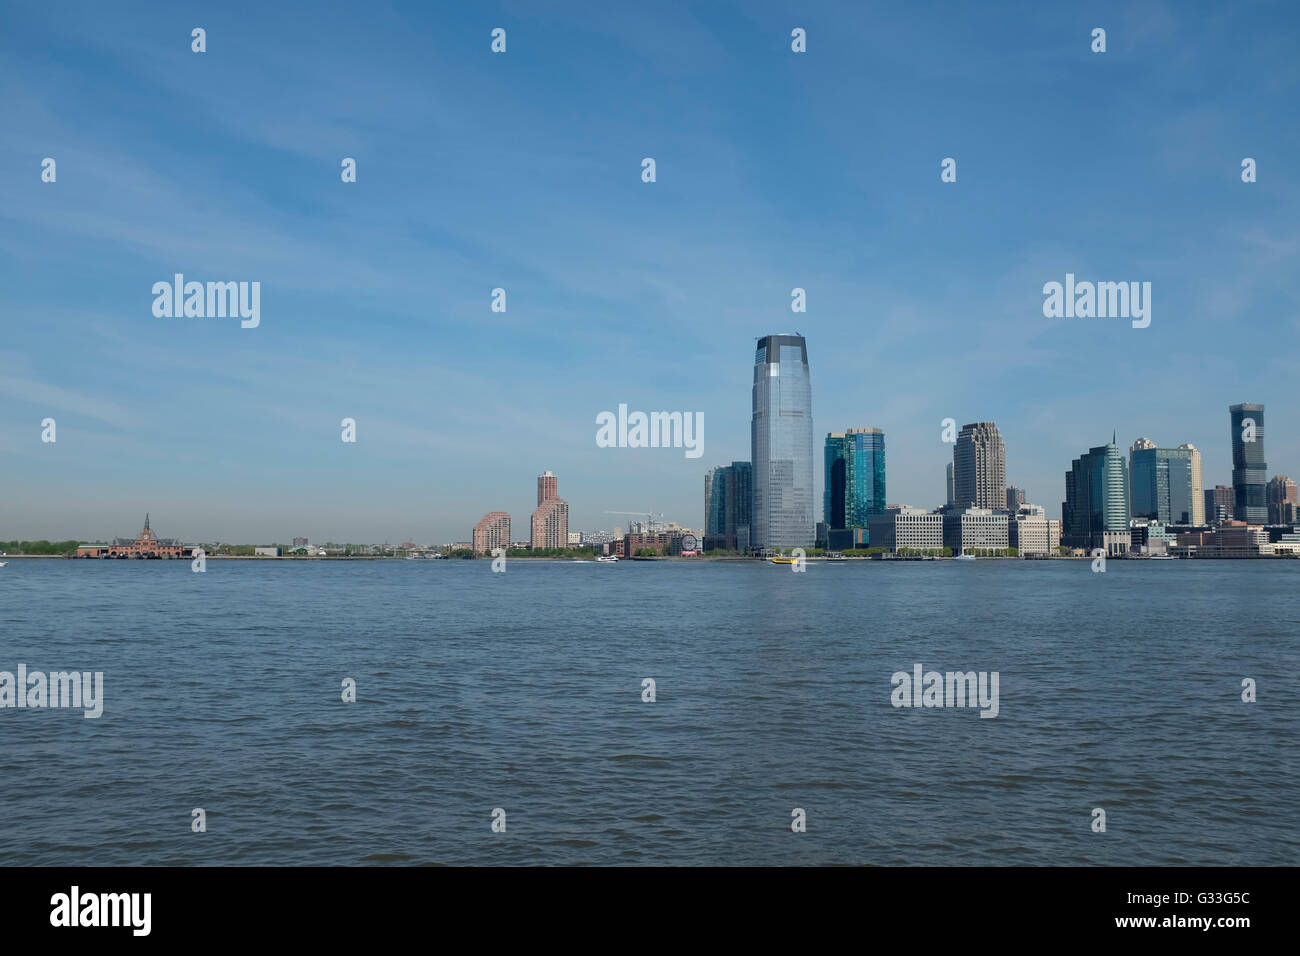 The skyline of lower downtown Manhattan, New York City, featuring the new One World Trade Center by architect David - Stock Image